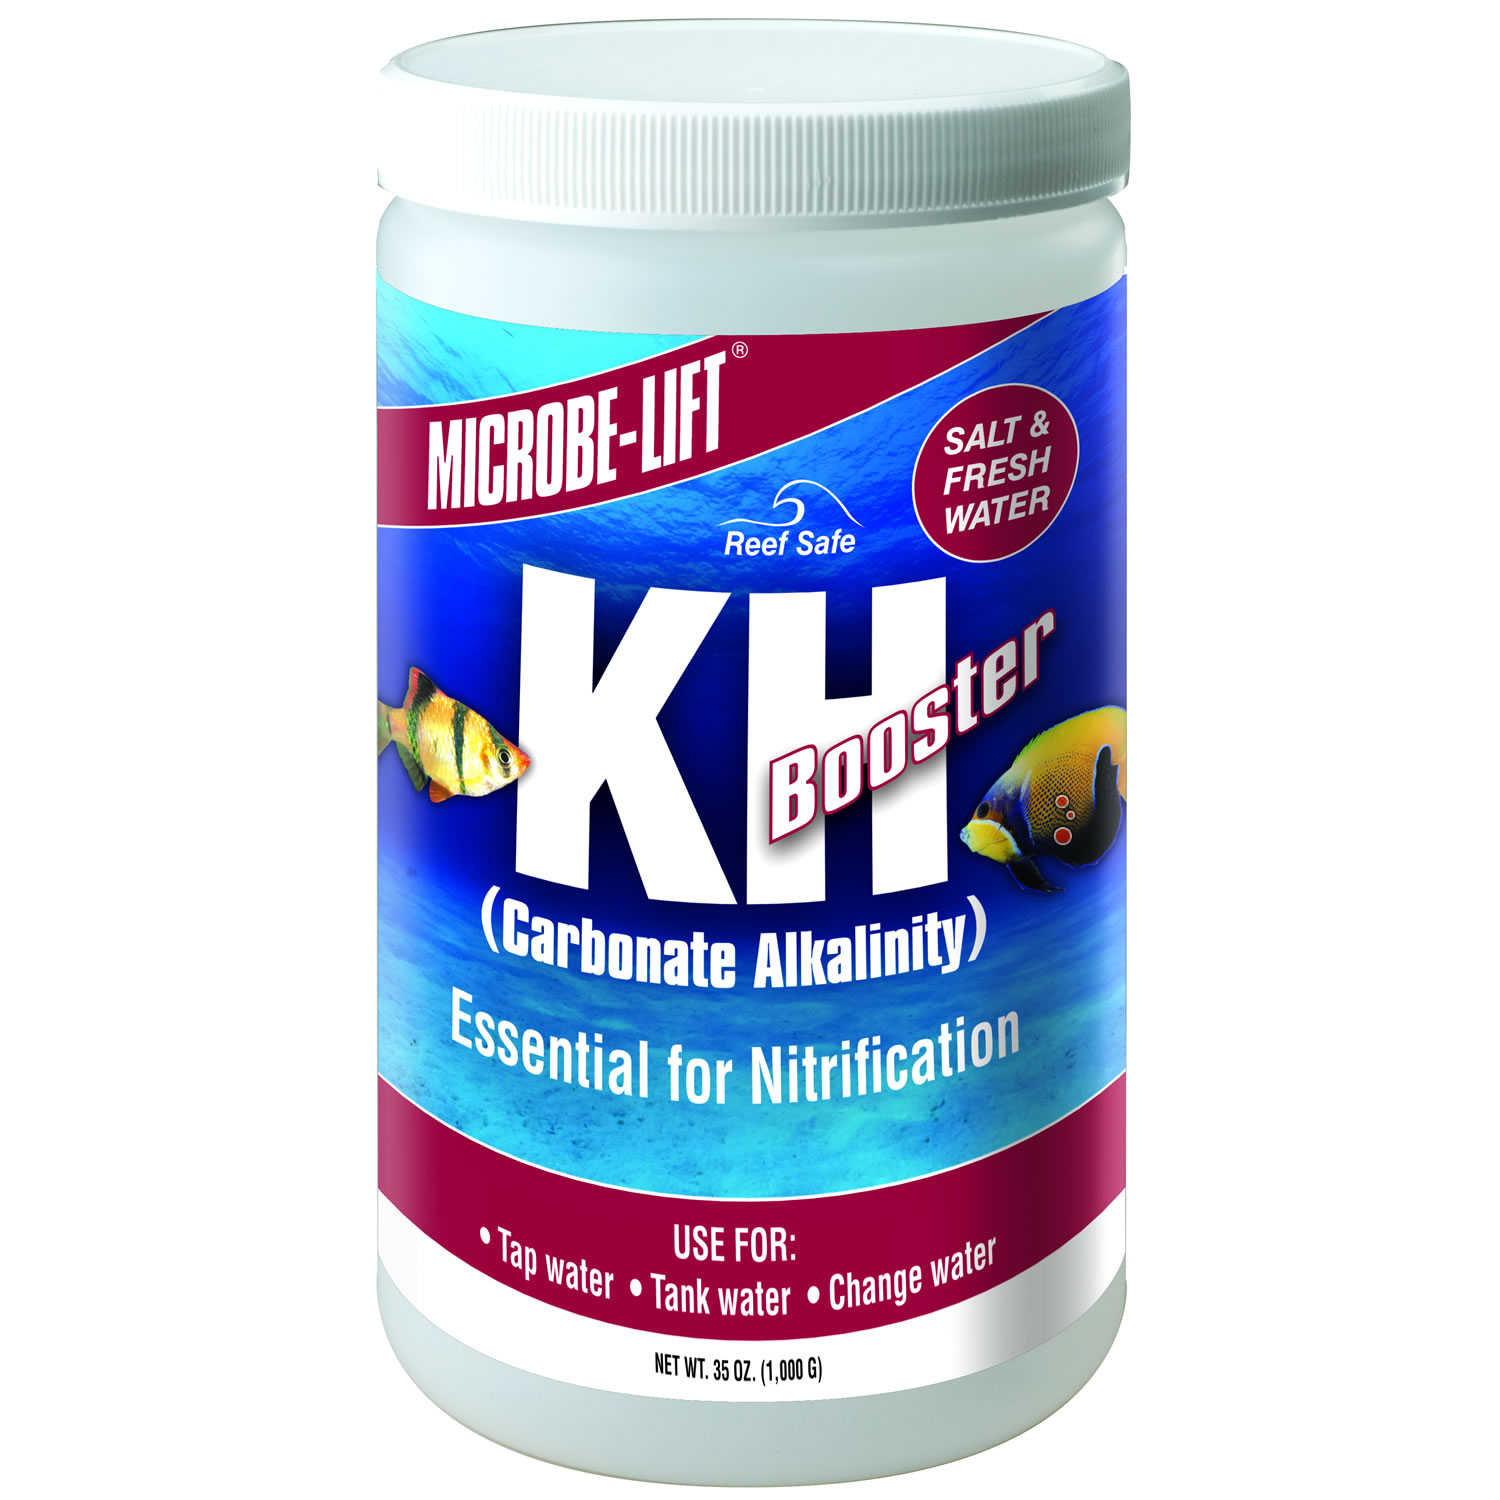 MICROBE-LIFT KH Bio-Active Booster